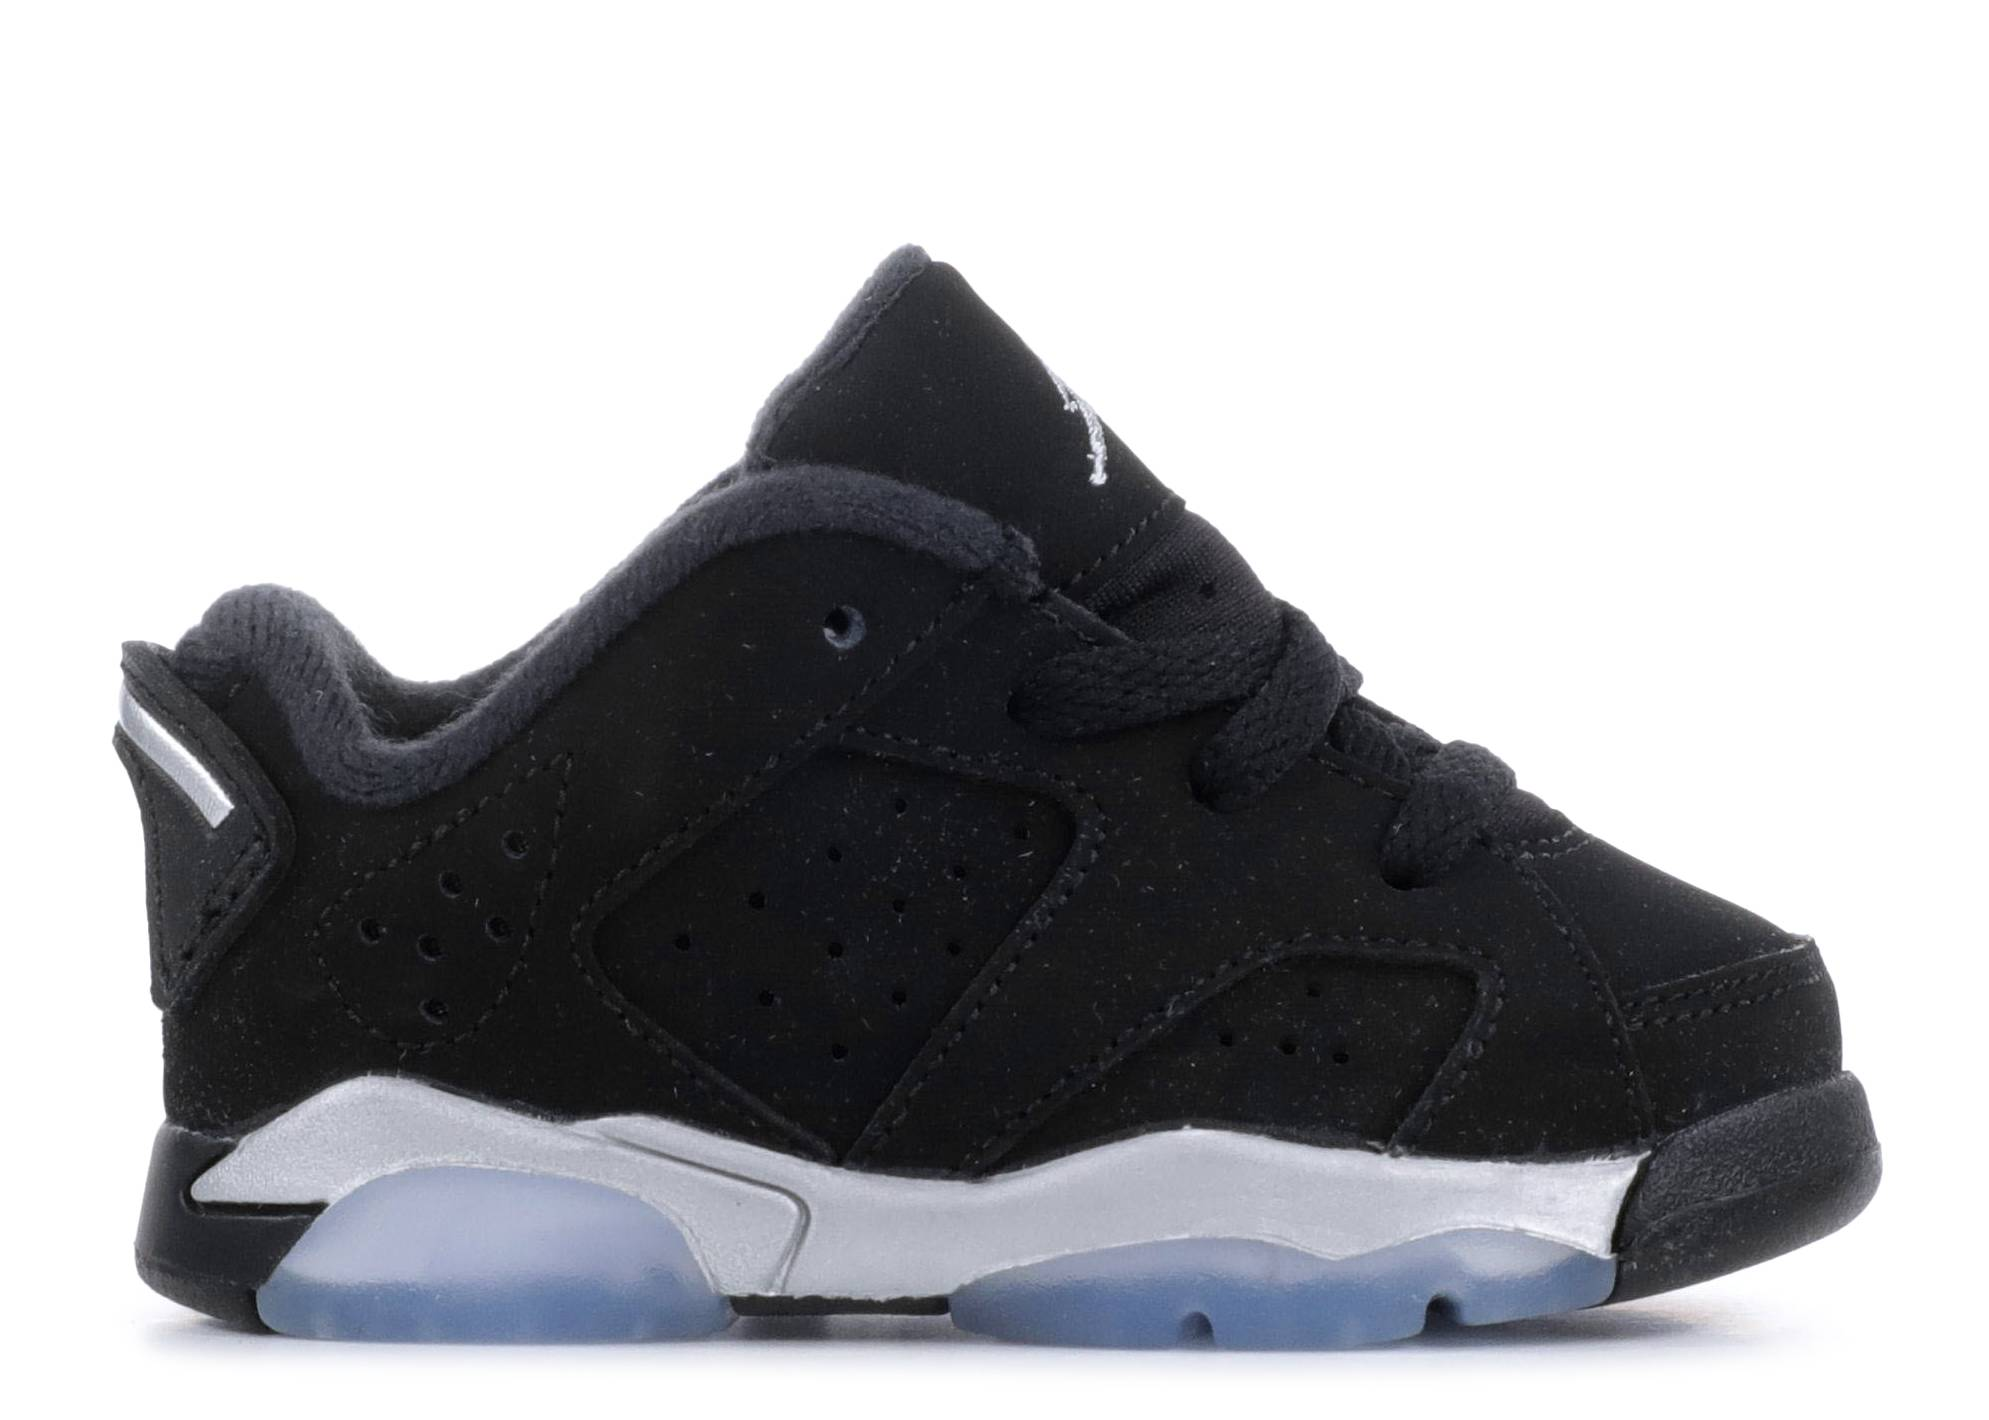 jordan 6 retro low bt